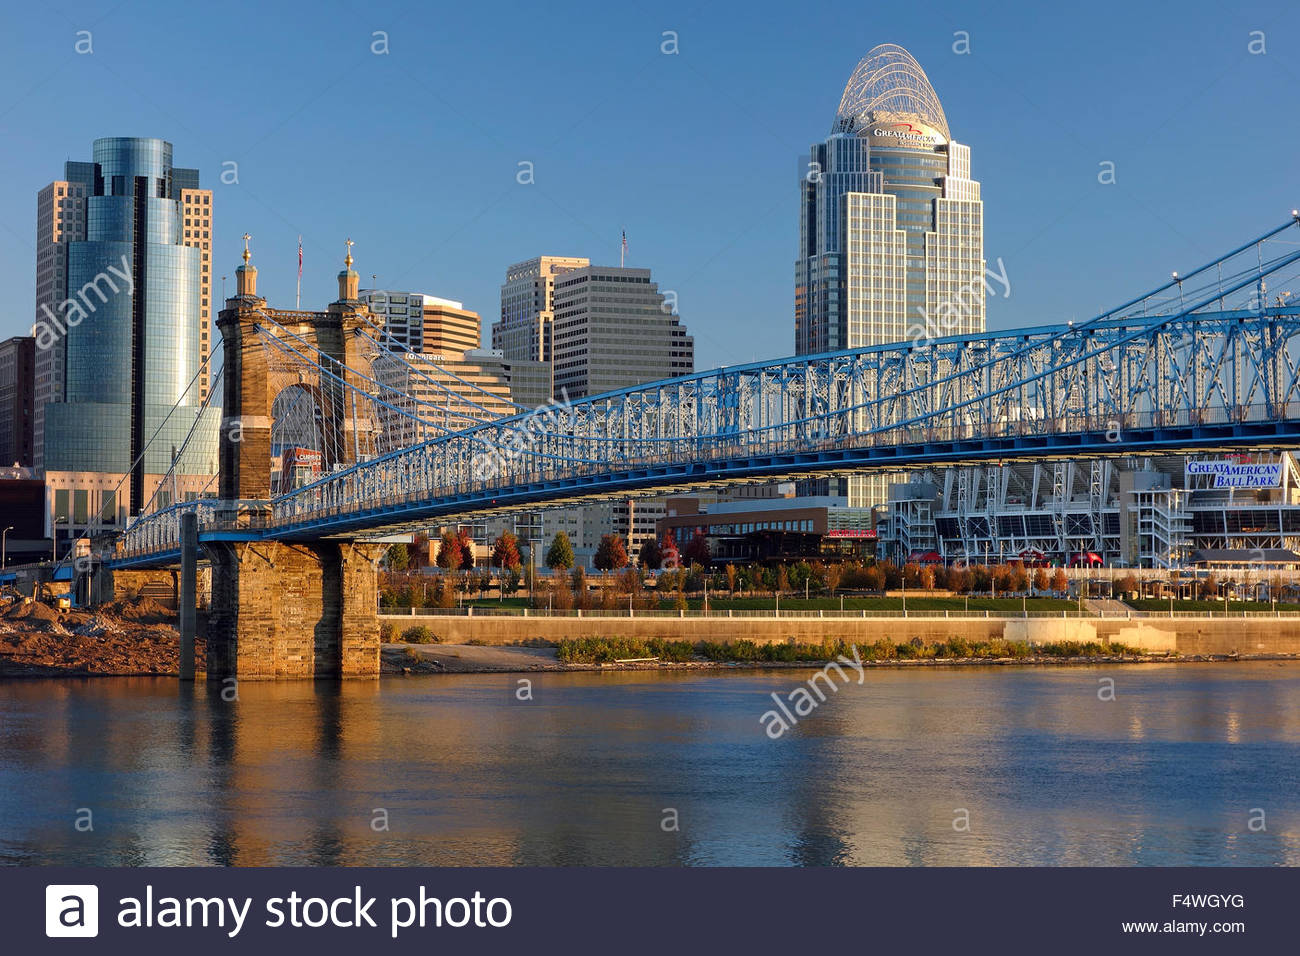 View of the city of Cincinatti, Ohio, USA - Stock Image